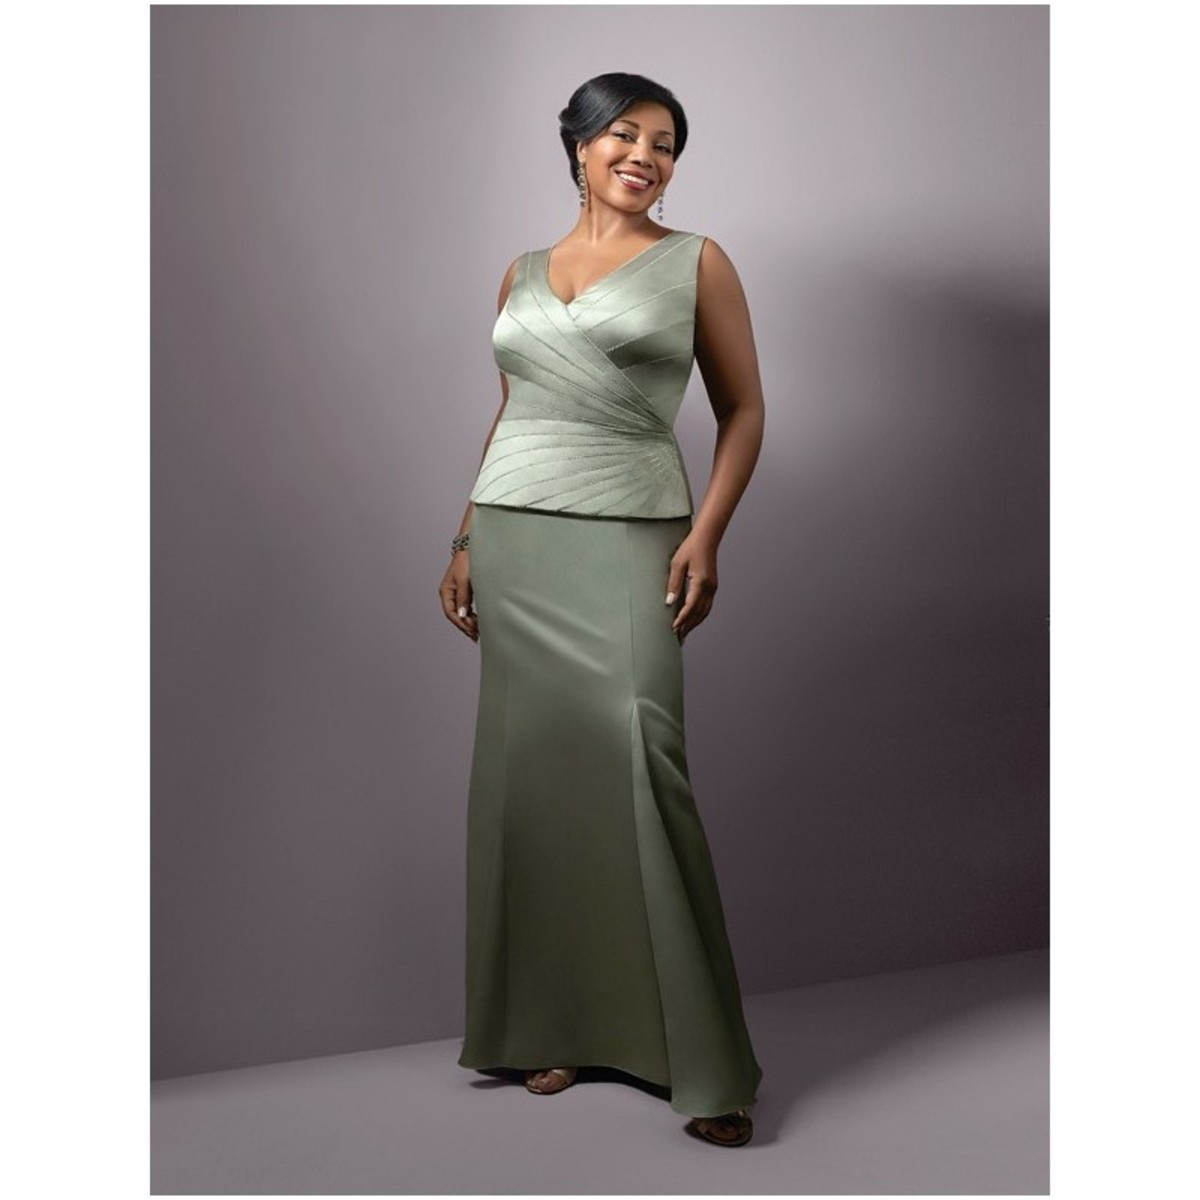 Wedding Gown For Parents: Selecting Wedding Attire Part II-Bridal Party And Parents